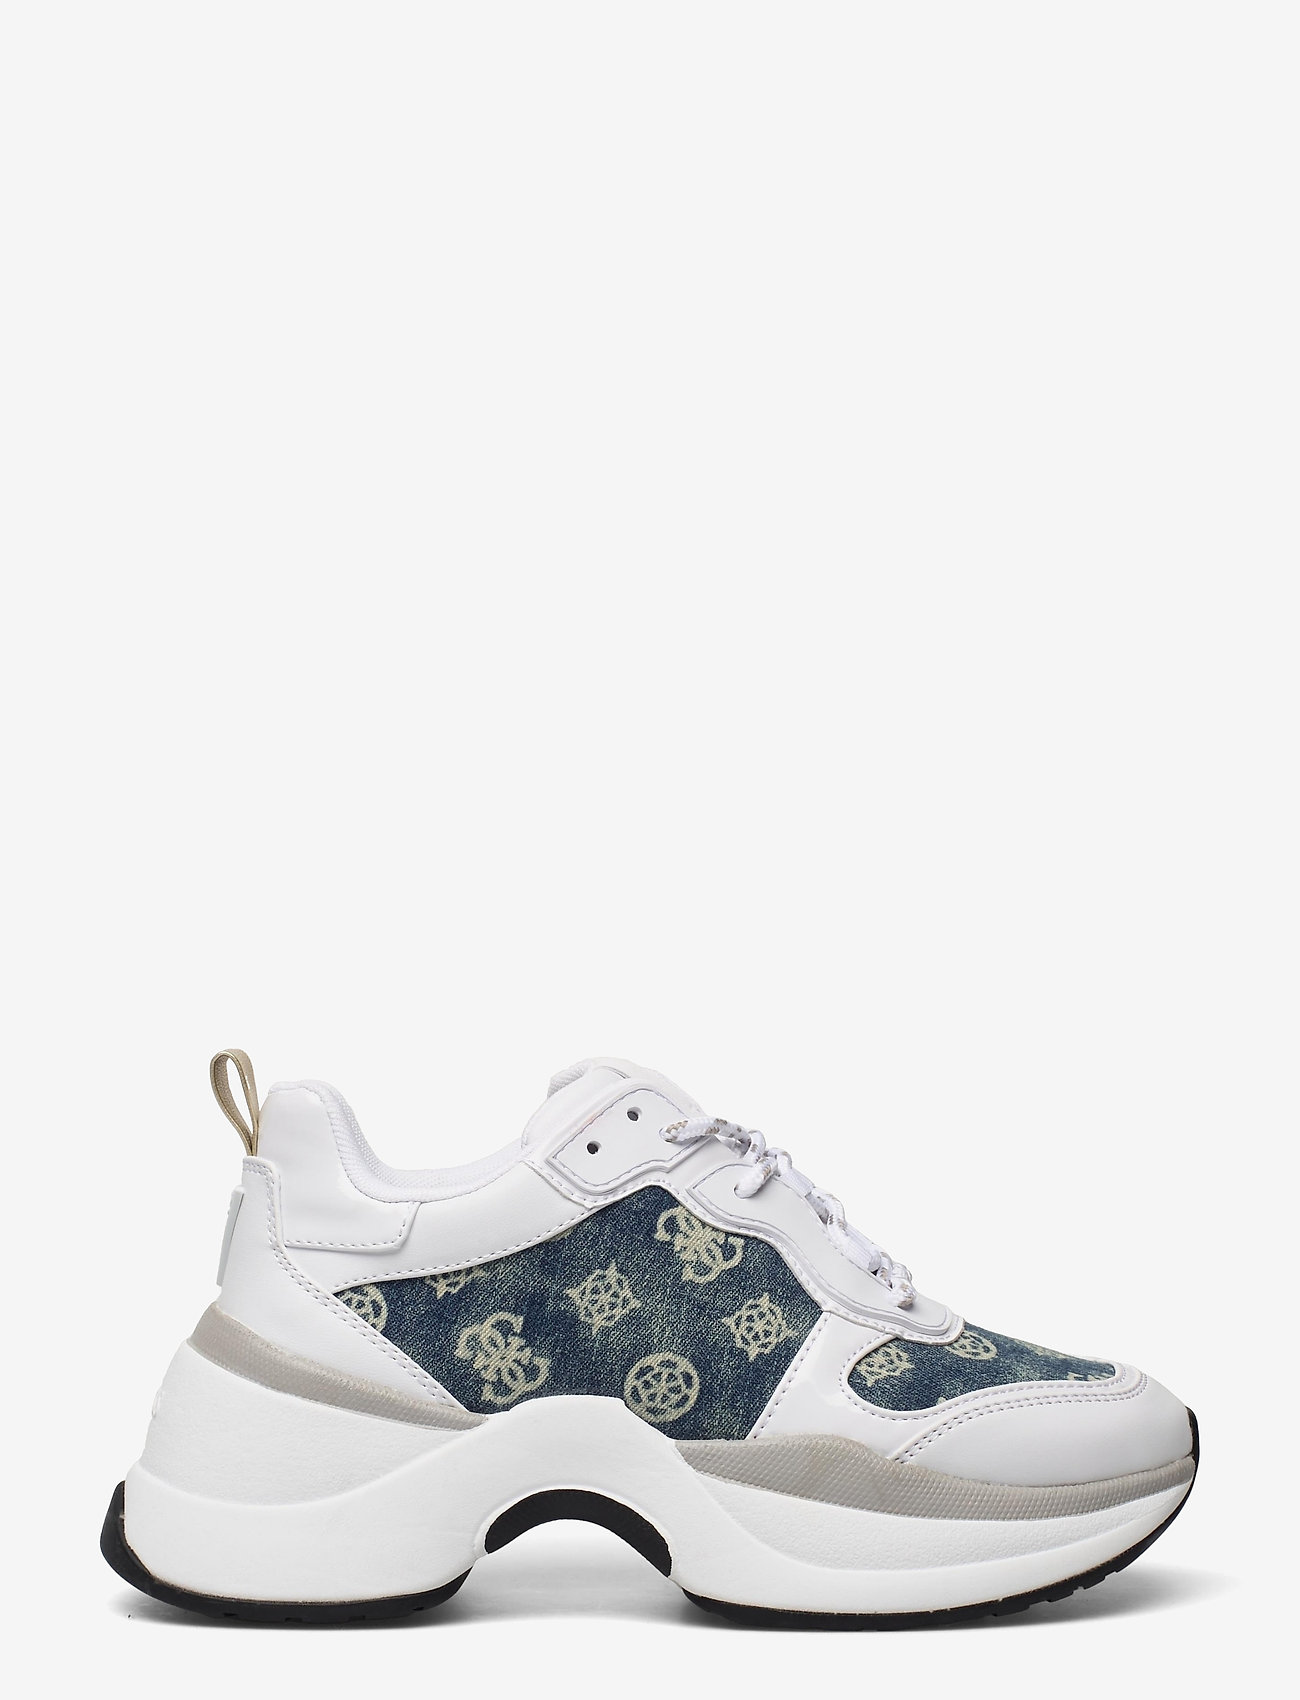 GUESS - JENNEA/ACTIVE LADY/LEATHER LIK - chunky sneakers - white - 1